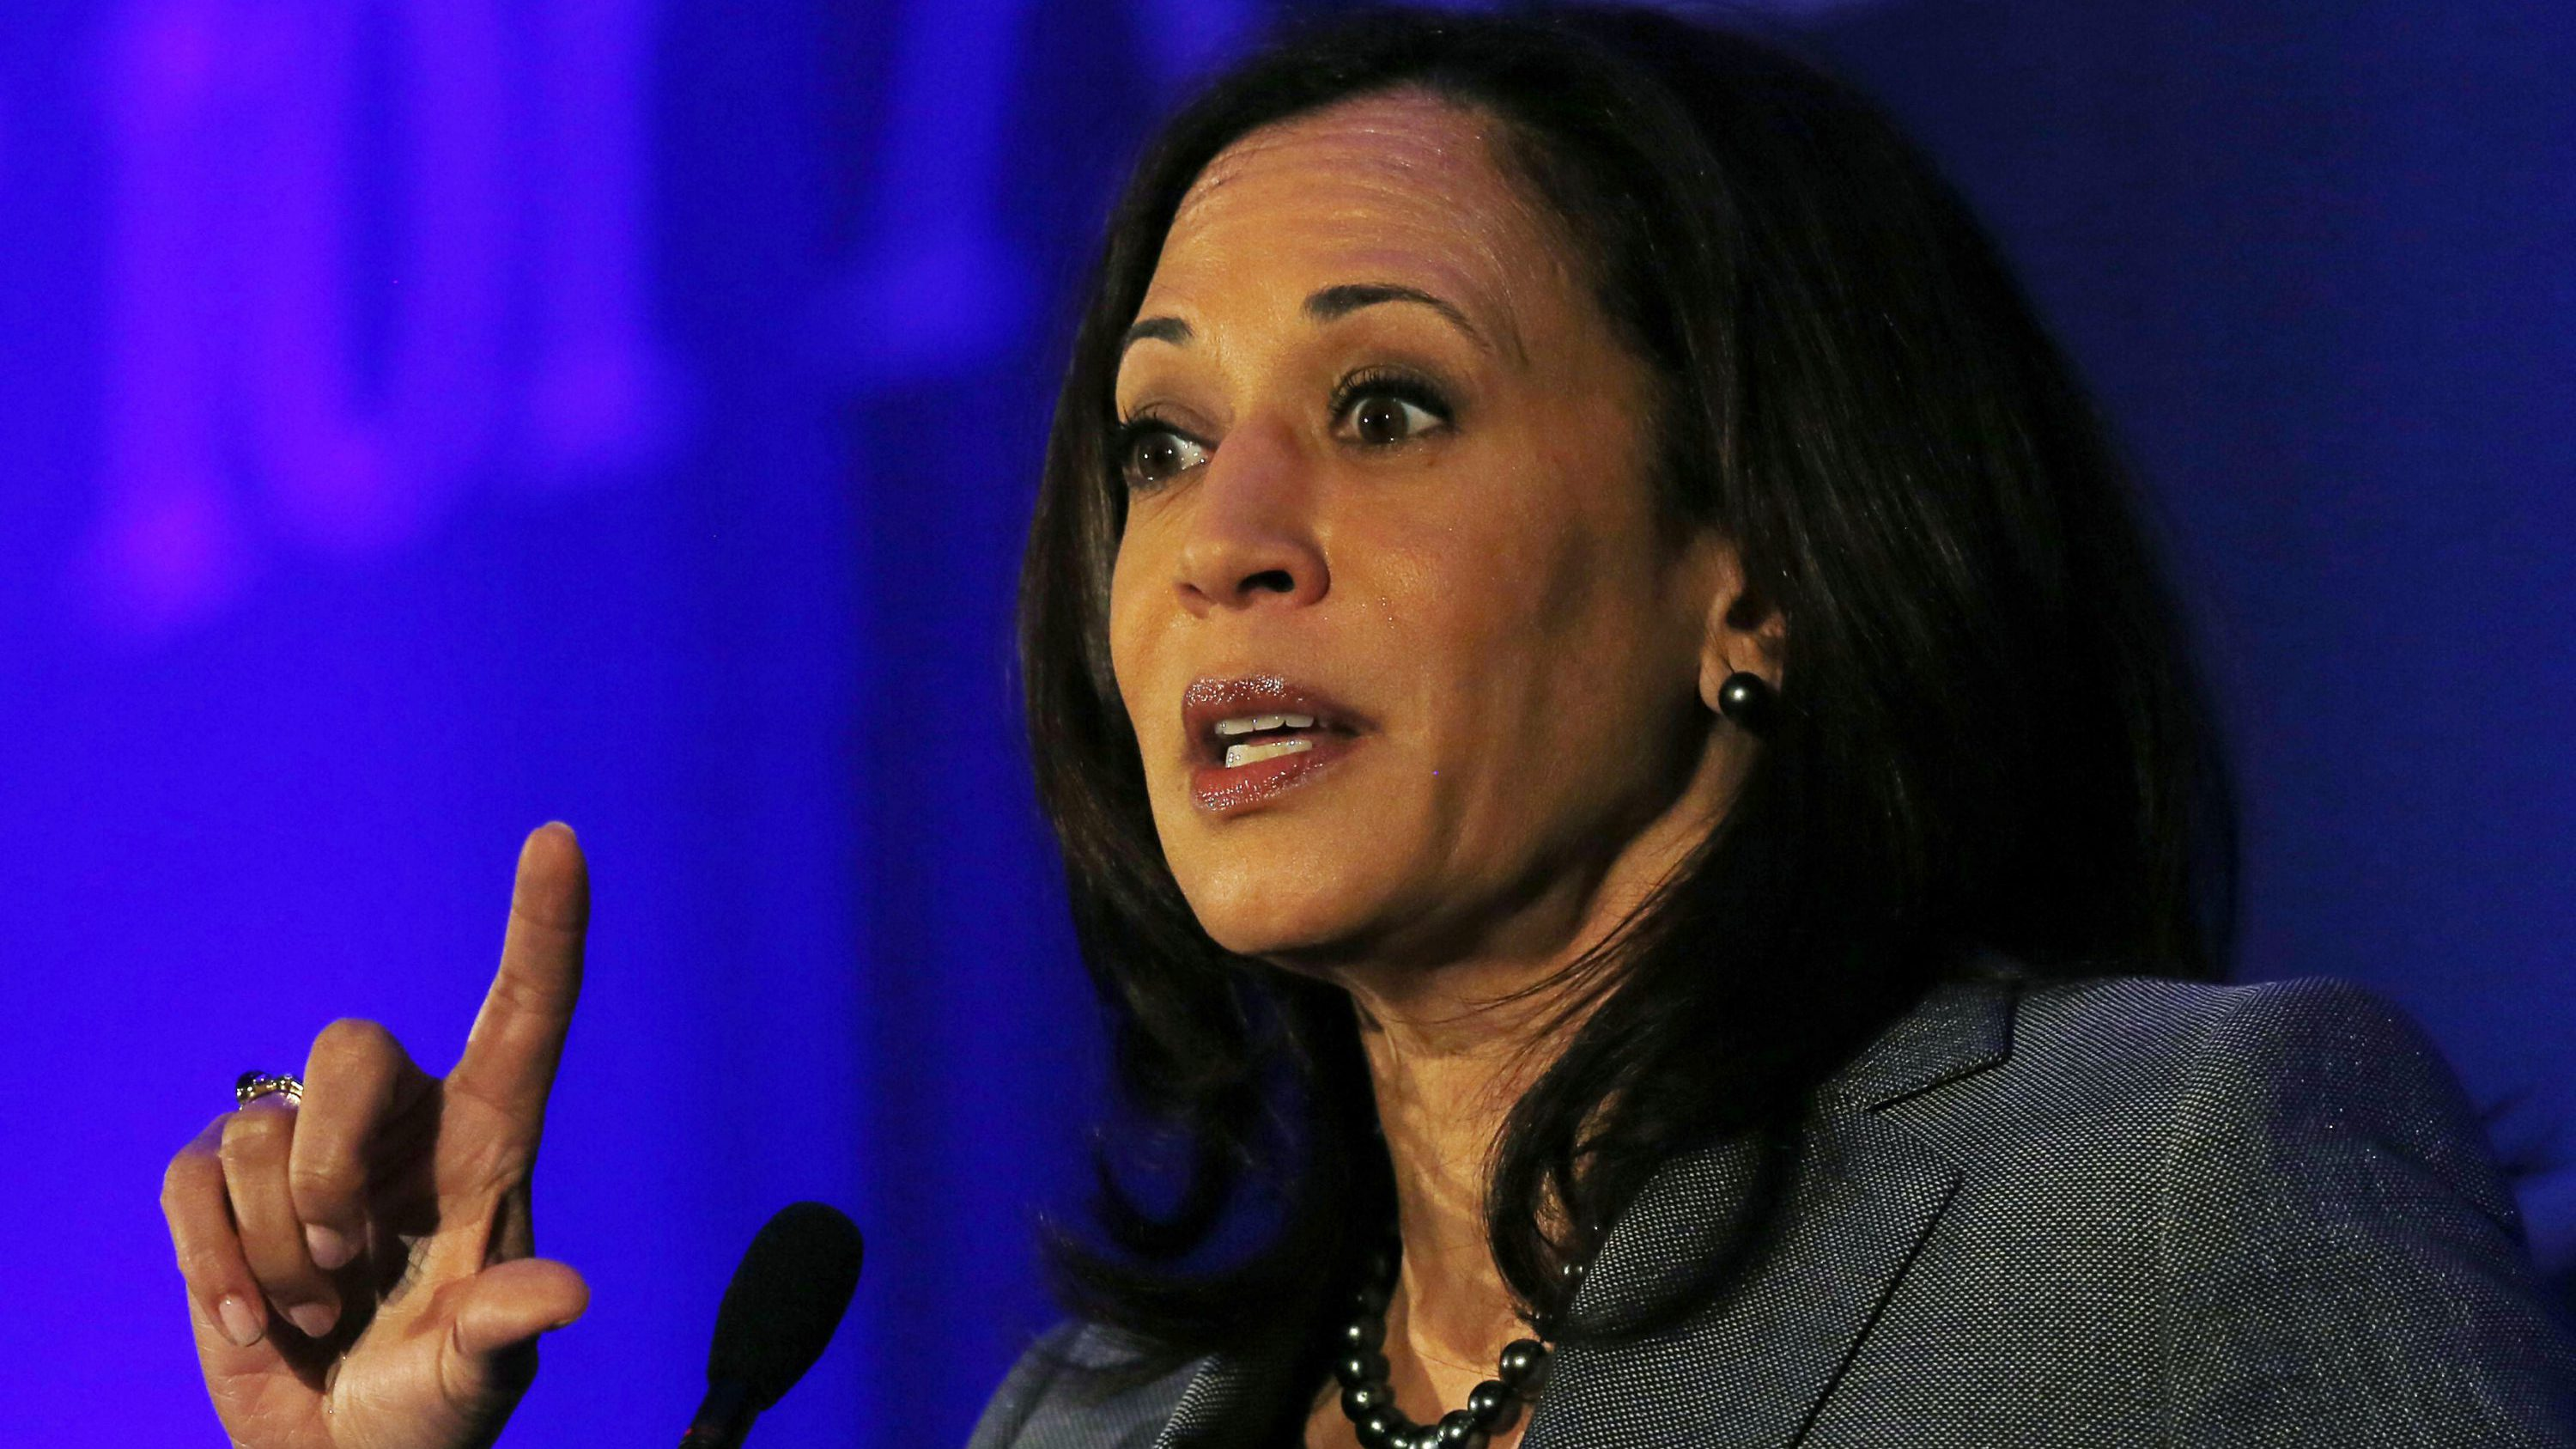 California Attorney General Kamala Harris speaks at the Center for American Progress' 2014 Making Progress Policy Conference in Washington, DC, U.S. on November 19, 2014.